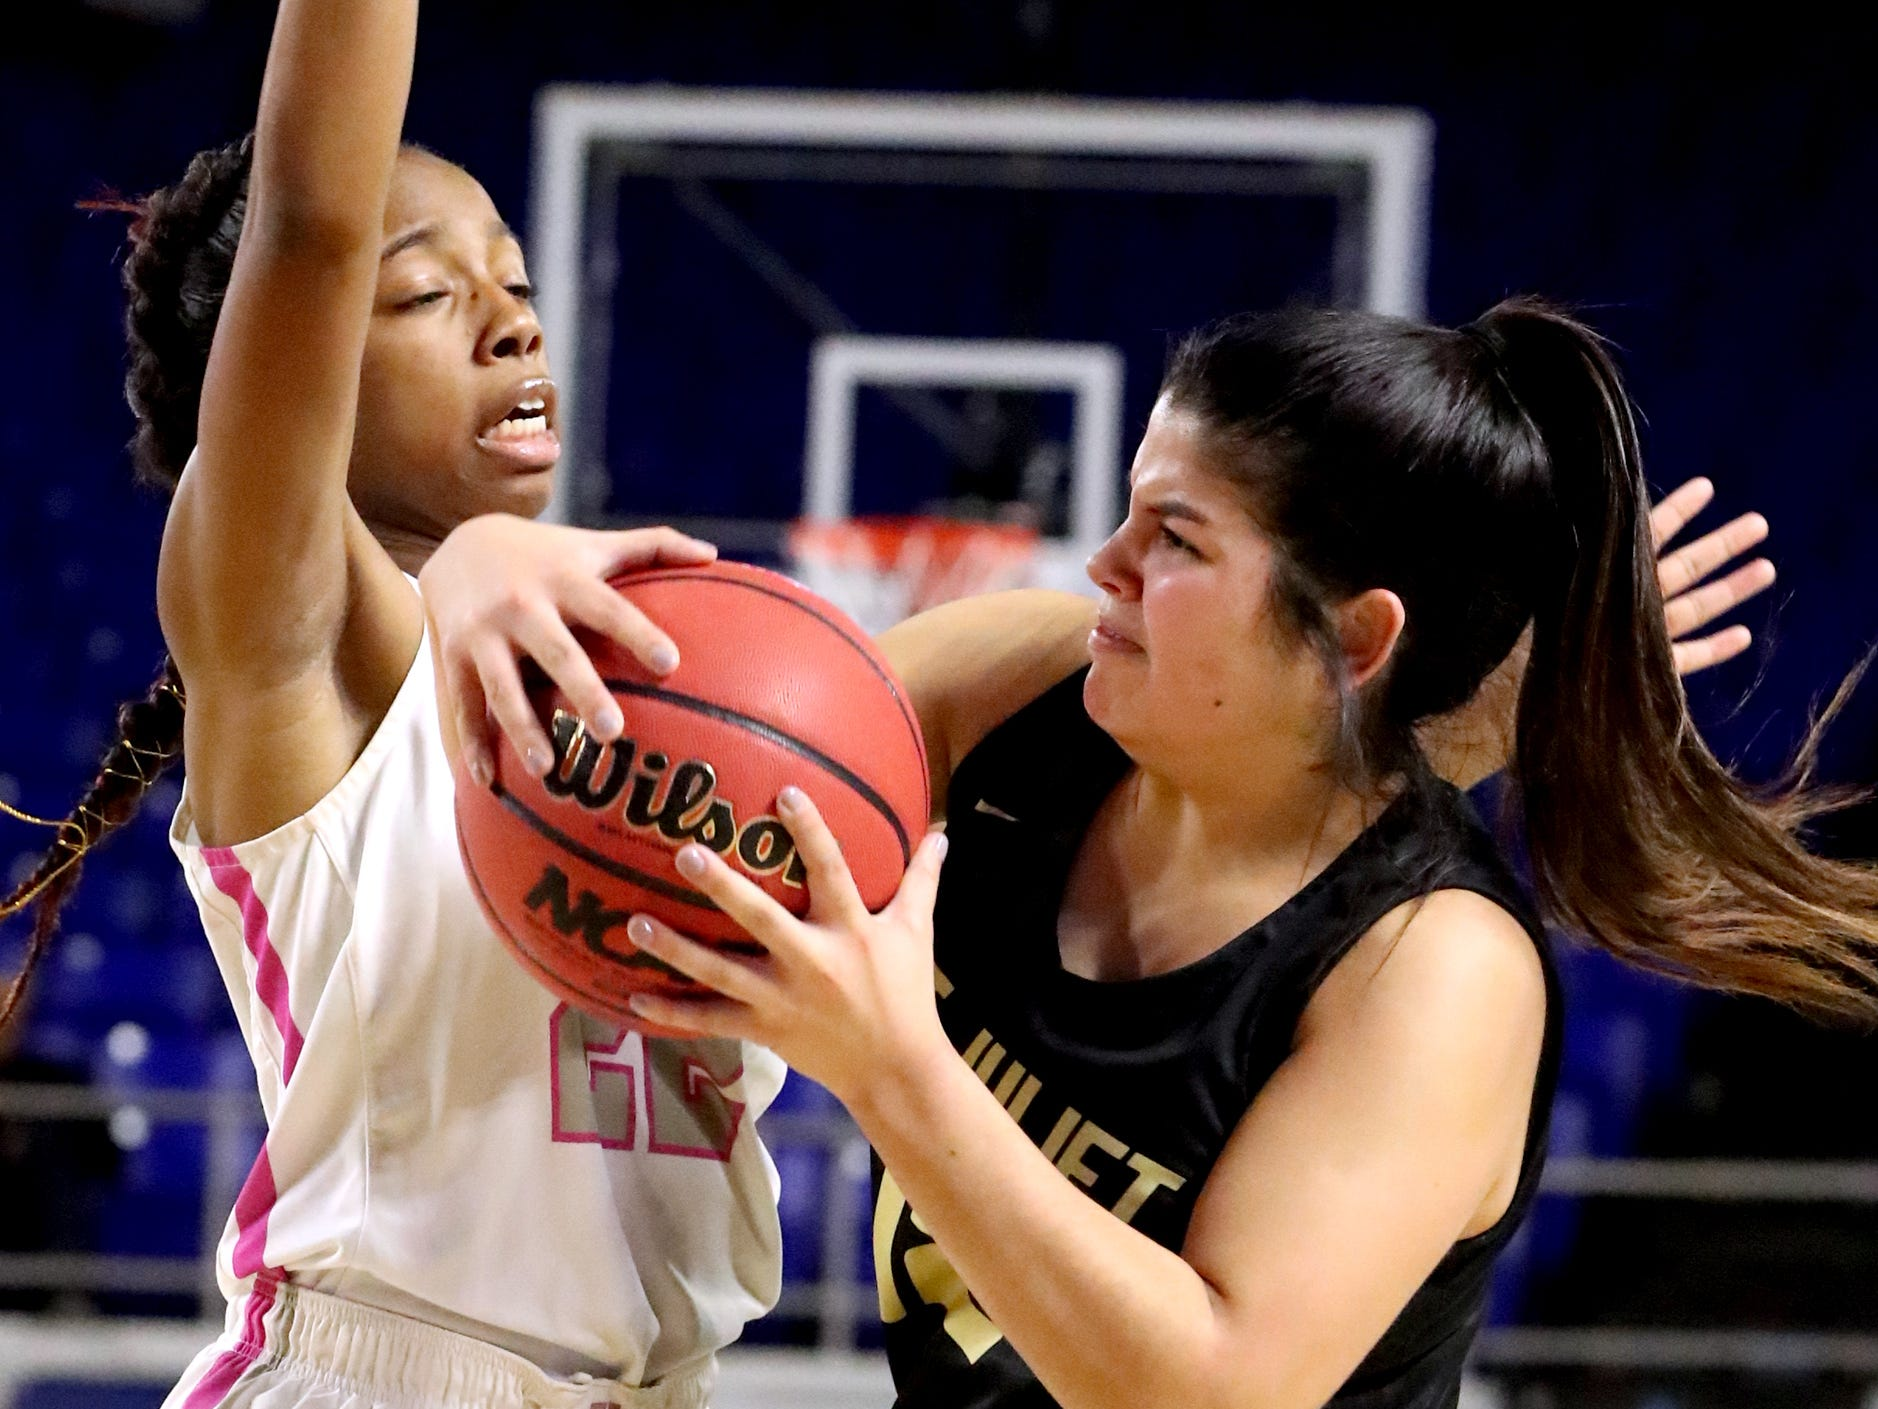 Mt. Juliet's Ryleigh Osborne (12) looks for a player to pass to as Houston's Nakiyah Westbrook (22) guards her during the quarterfinal round of the TSSAA Div. 1 Class AAA Girls State Tournament, on Wednesday, March 6, 2019, at Murphy Center in Murfreesboro, Tenn.